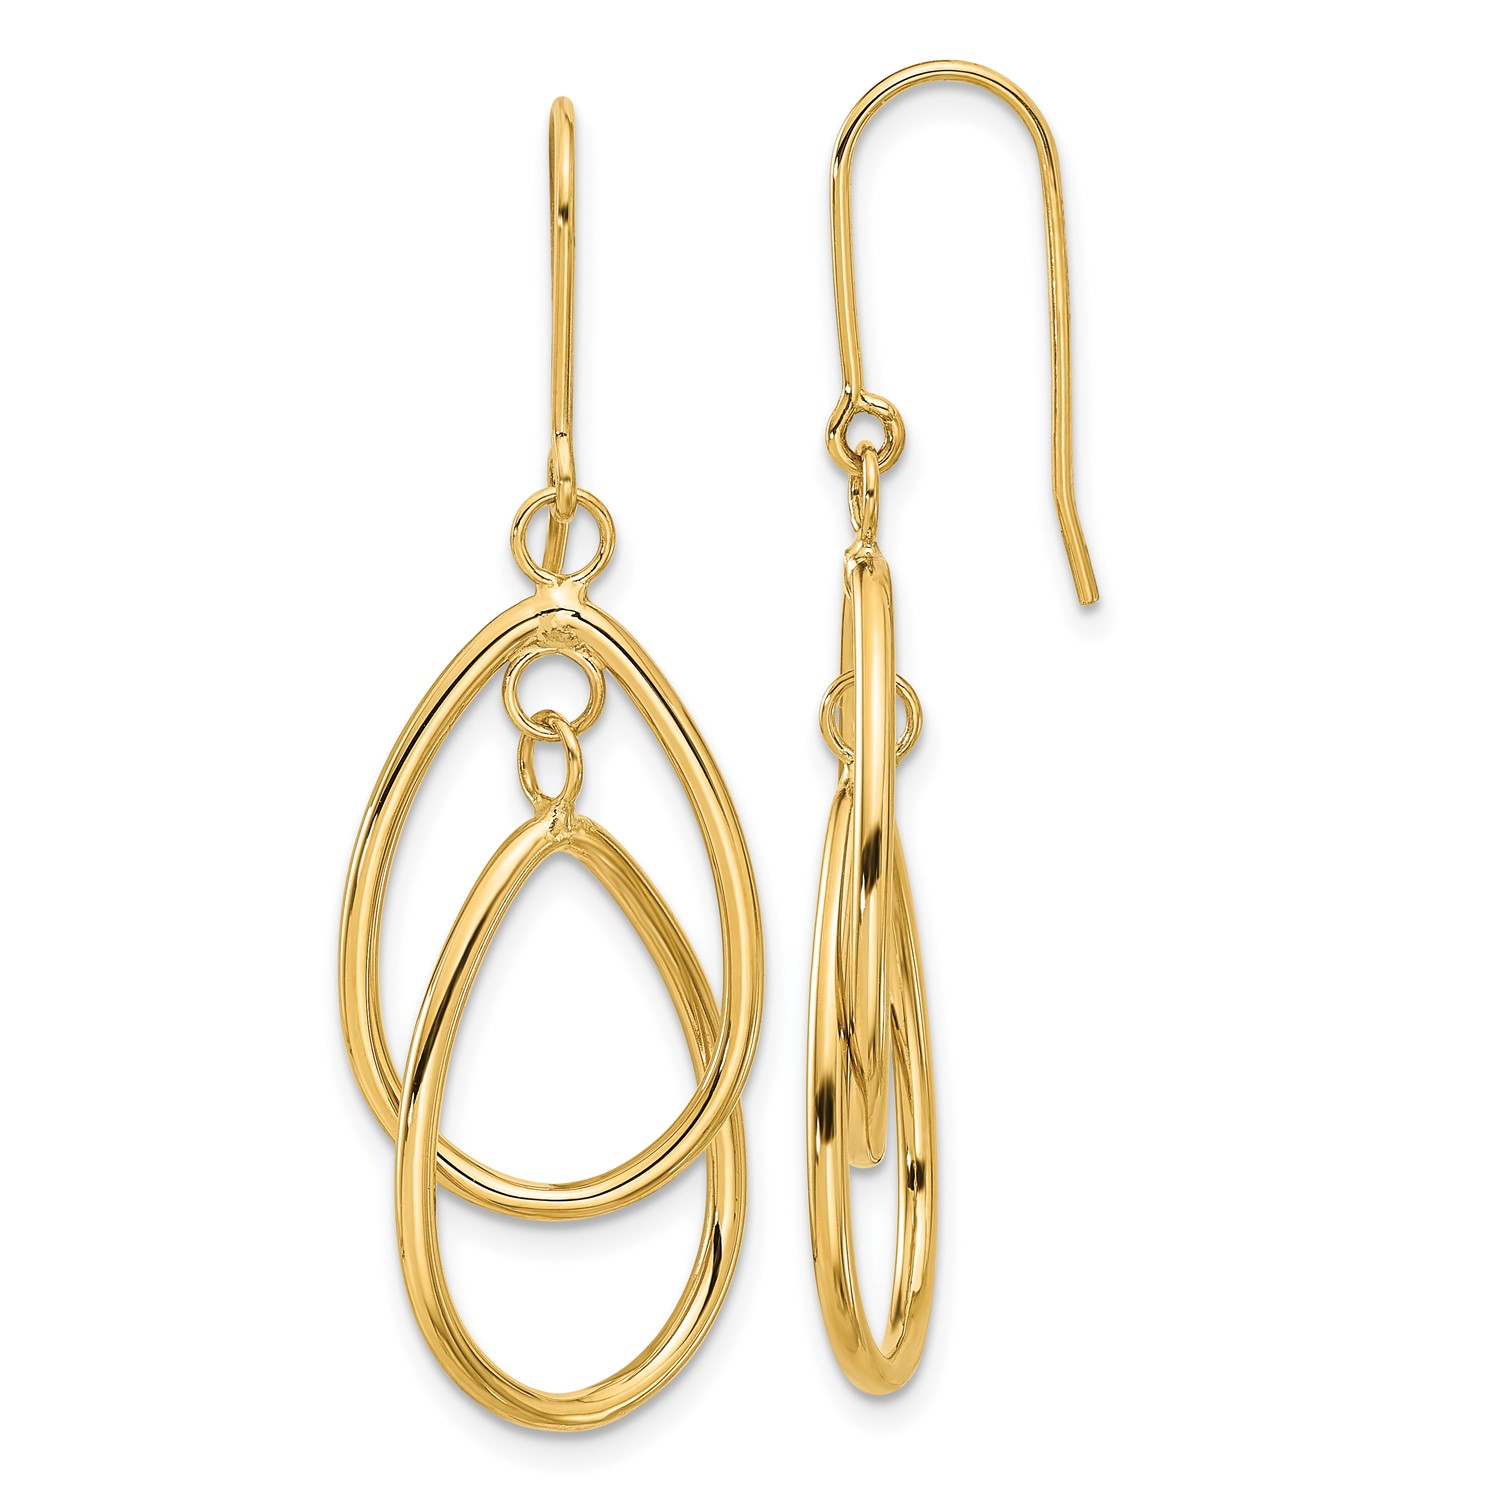 14k Yellow gold Polished Double Circle Dangle Wire Earrings (1.6IN x 0.6IN)